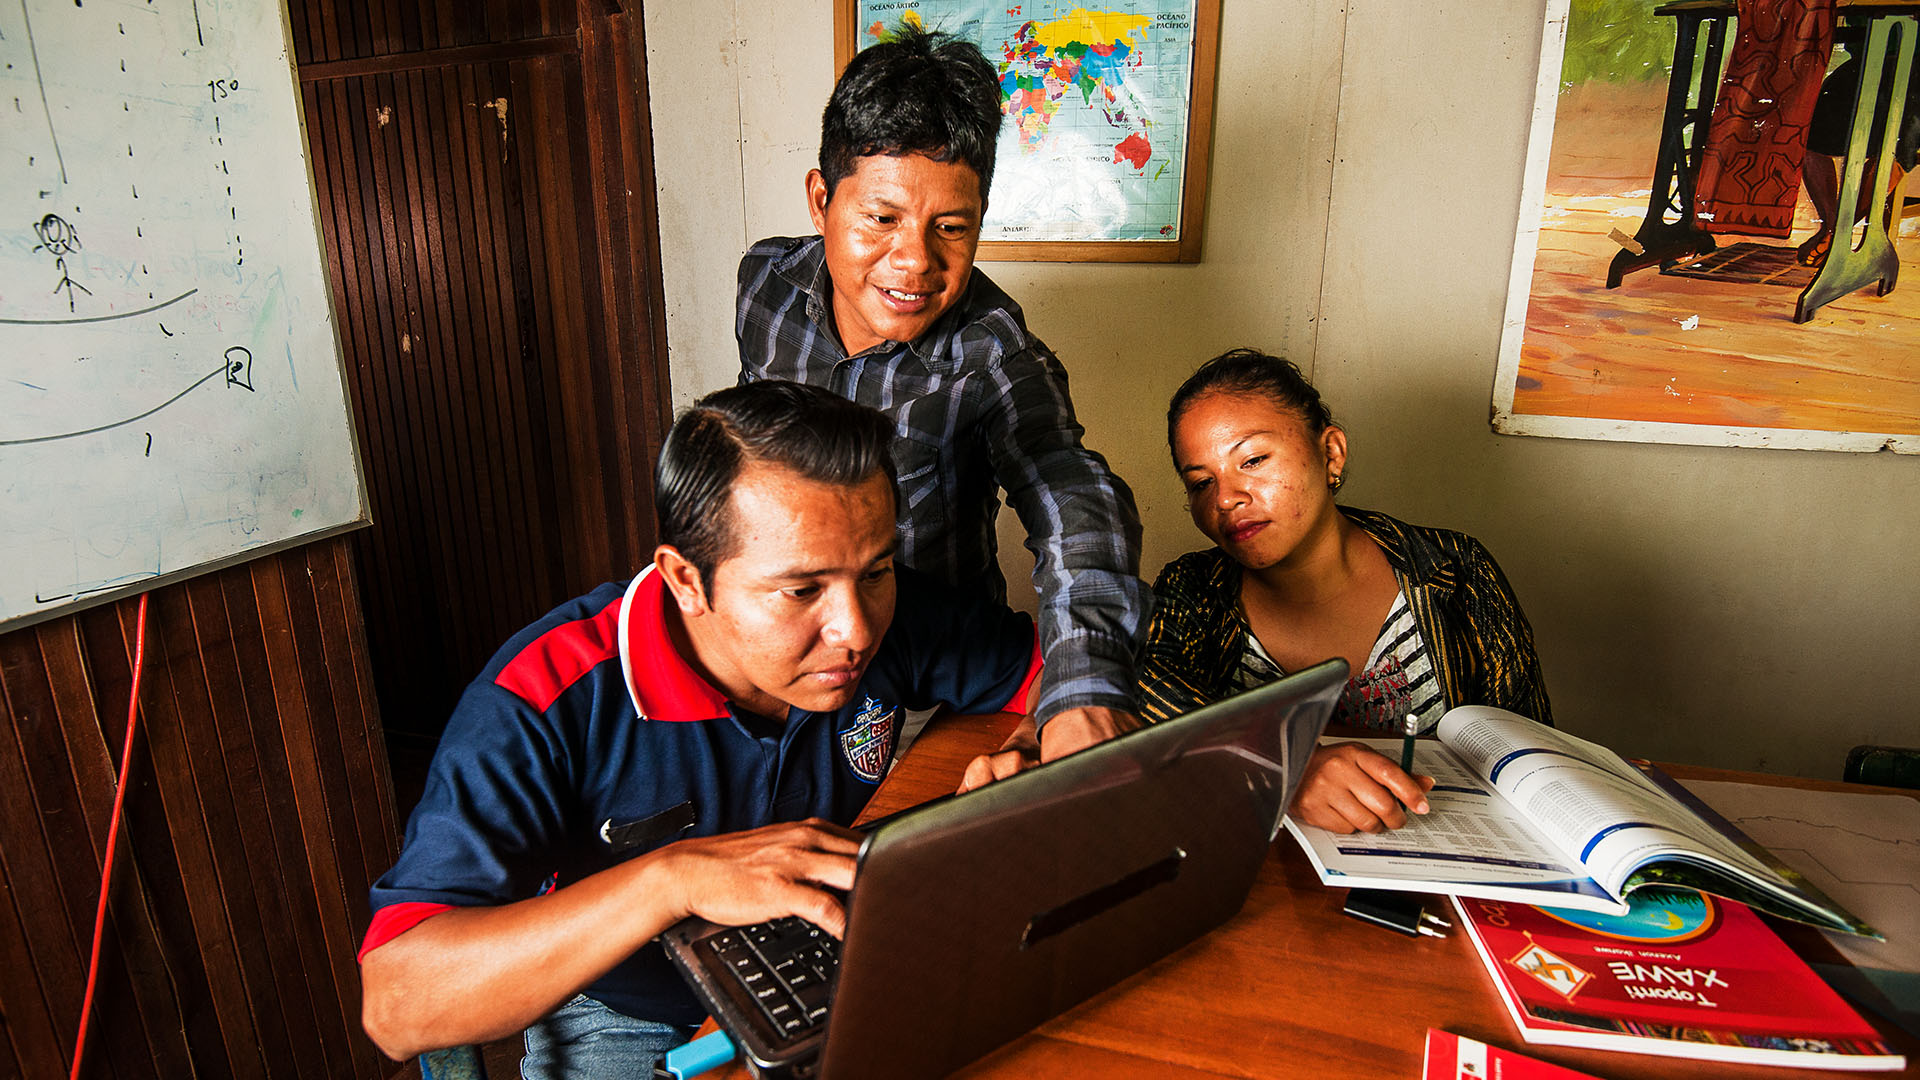 Three people working together at a computer